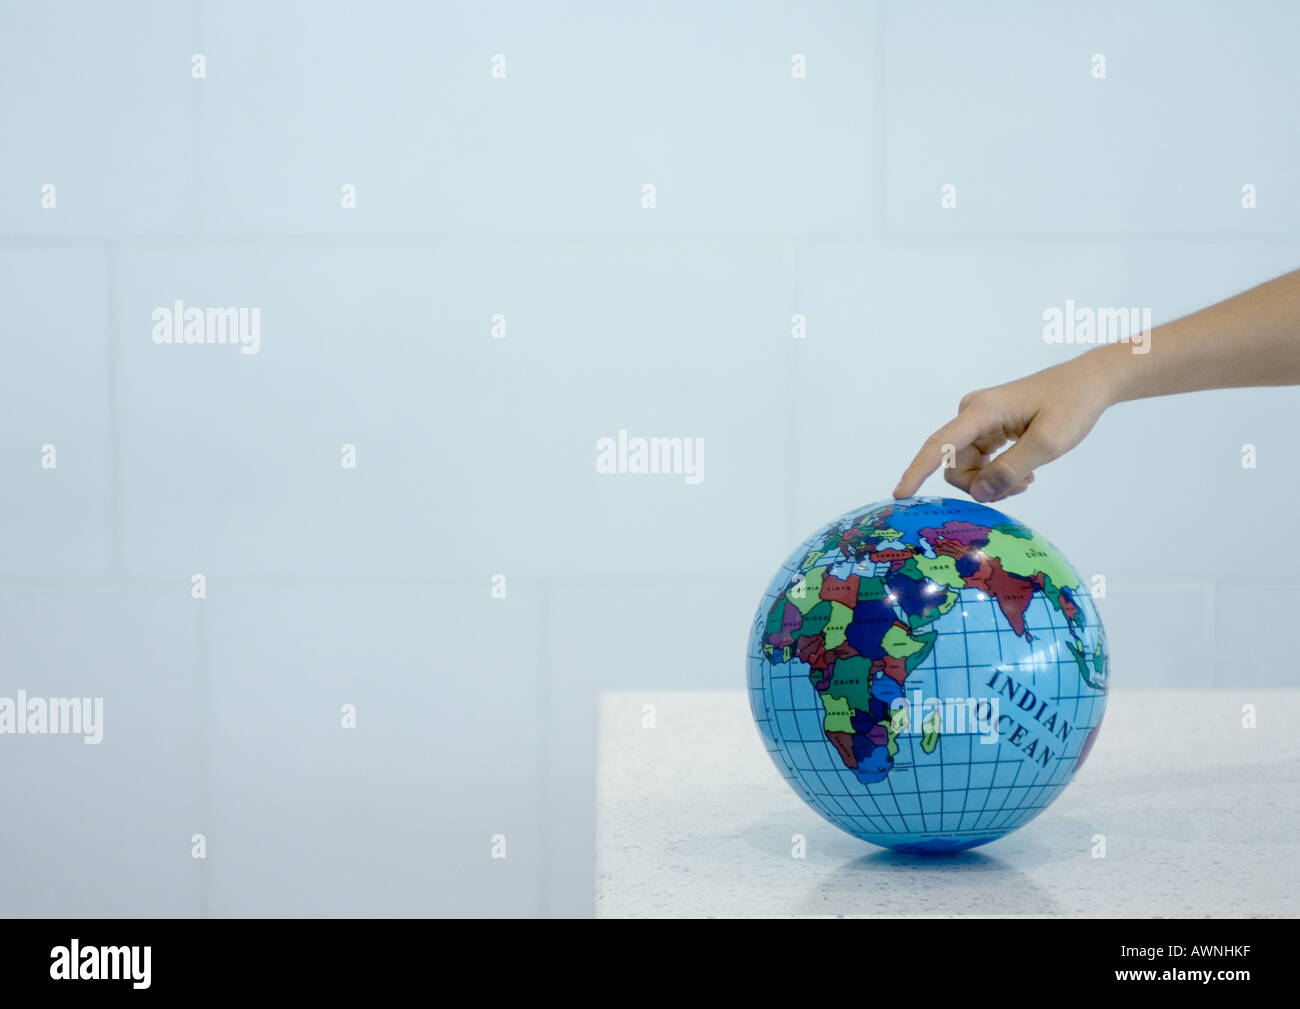 Child's hand pointing to spot on globe - Stock Image